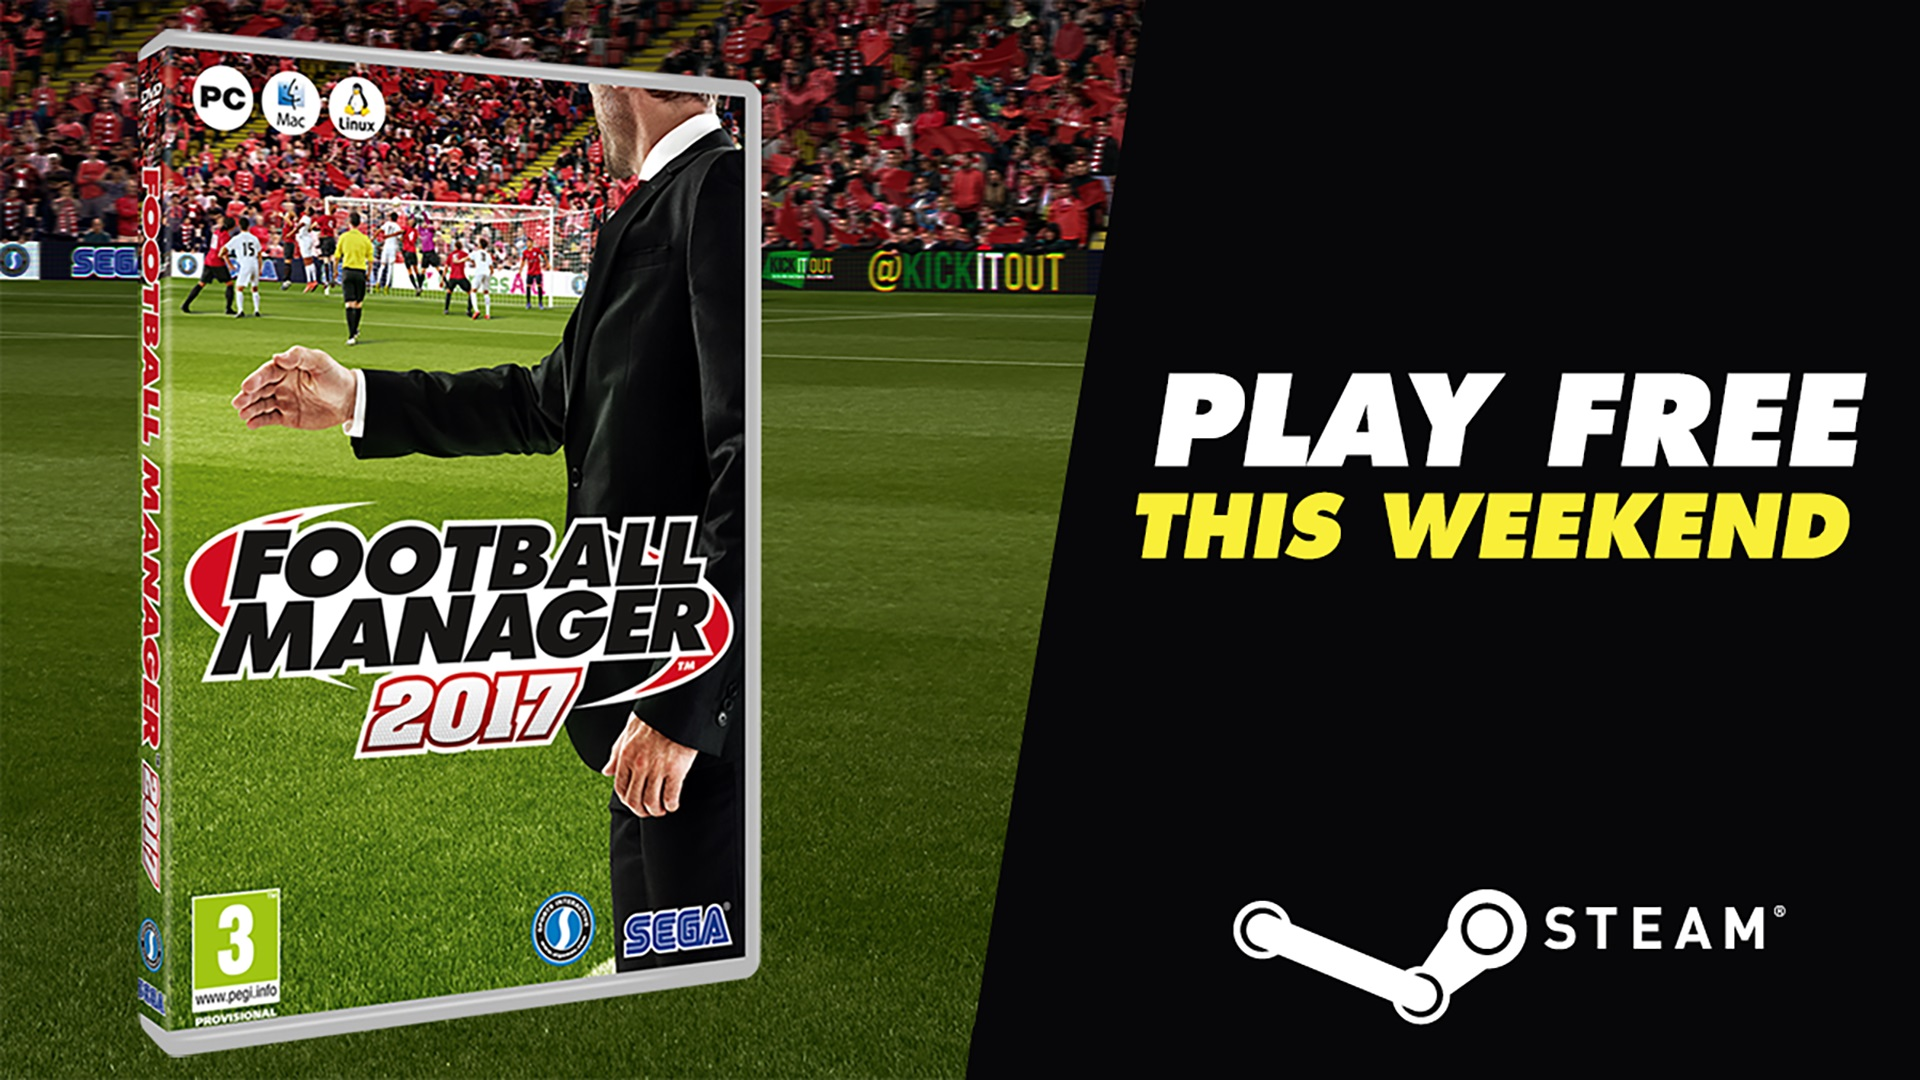 play football manager 2017 for free this weekend goal com